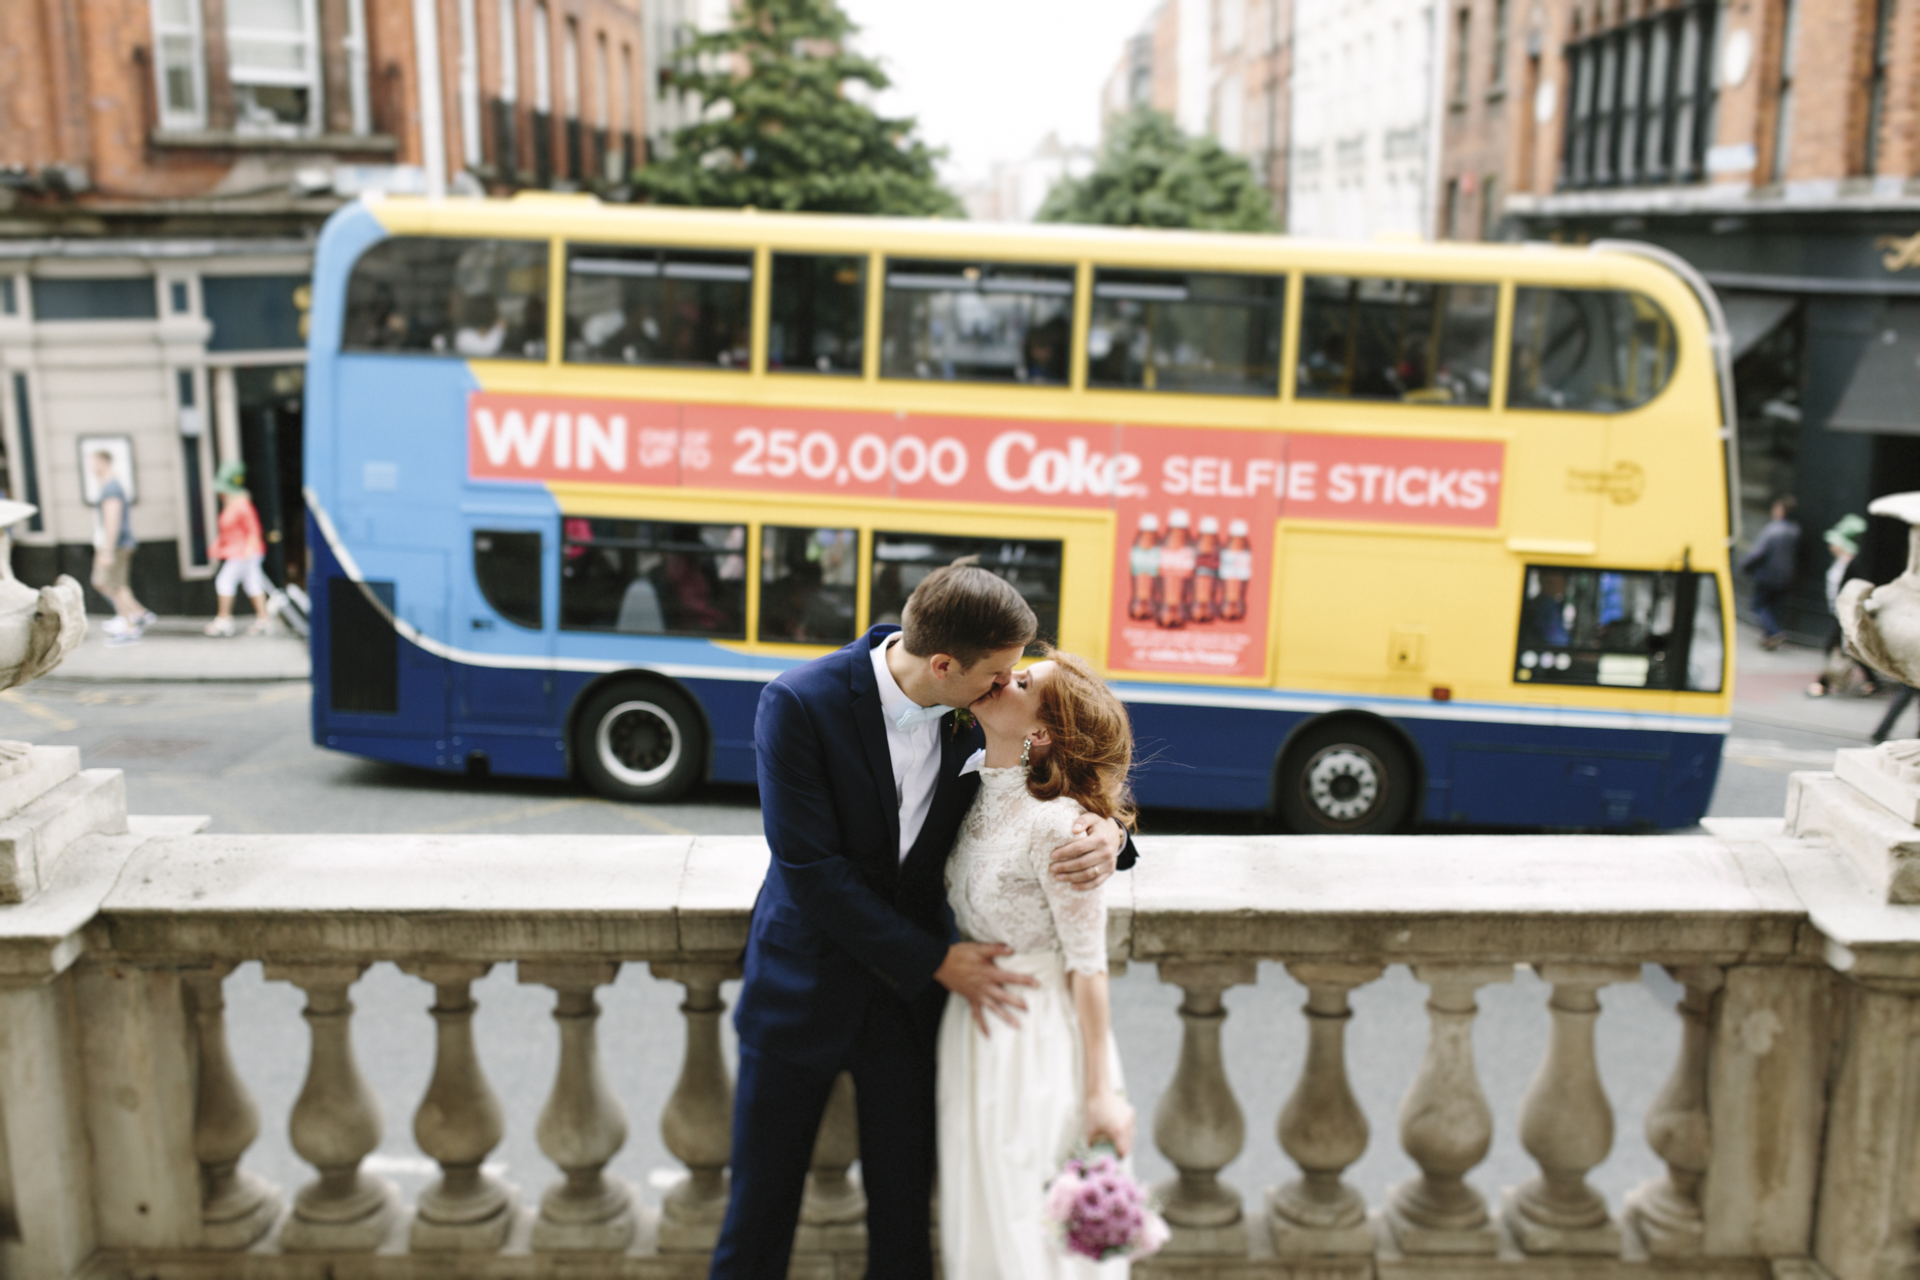 Dublin Wedding Photographer Graciela Vilagudin 00177.jpg